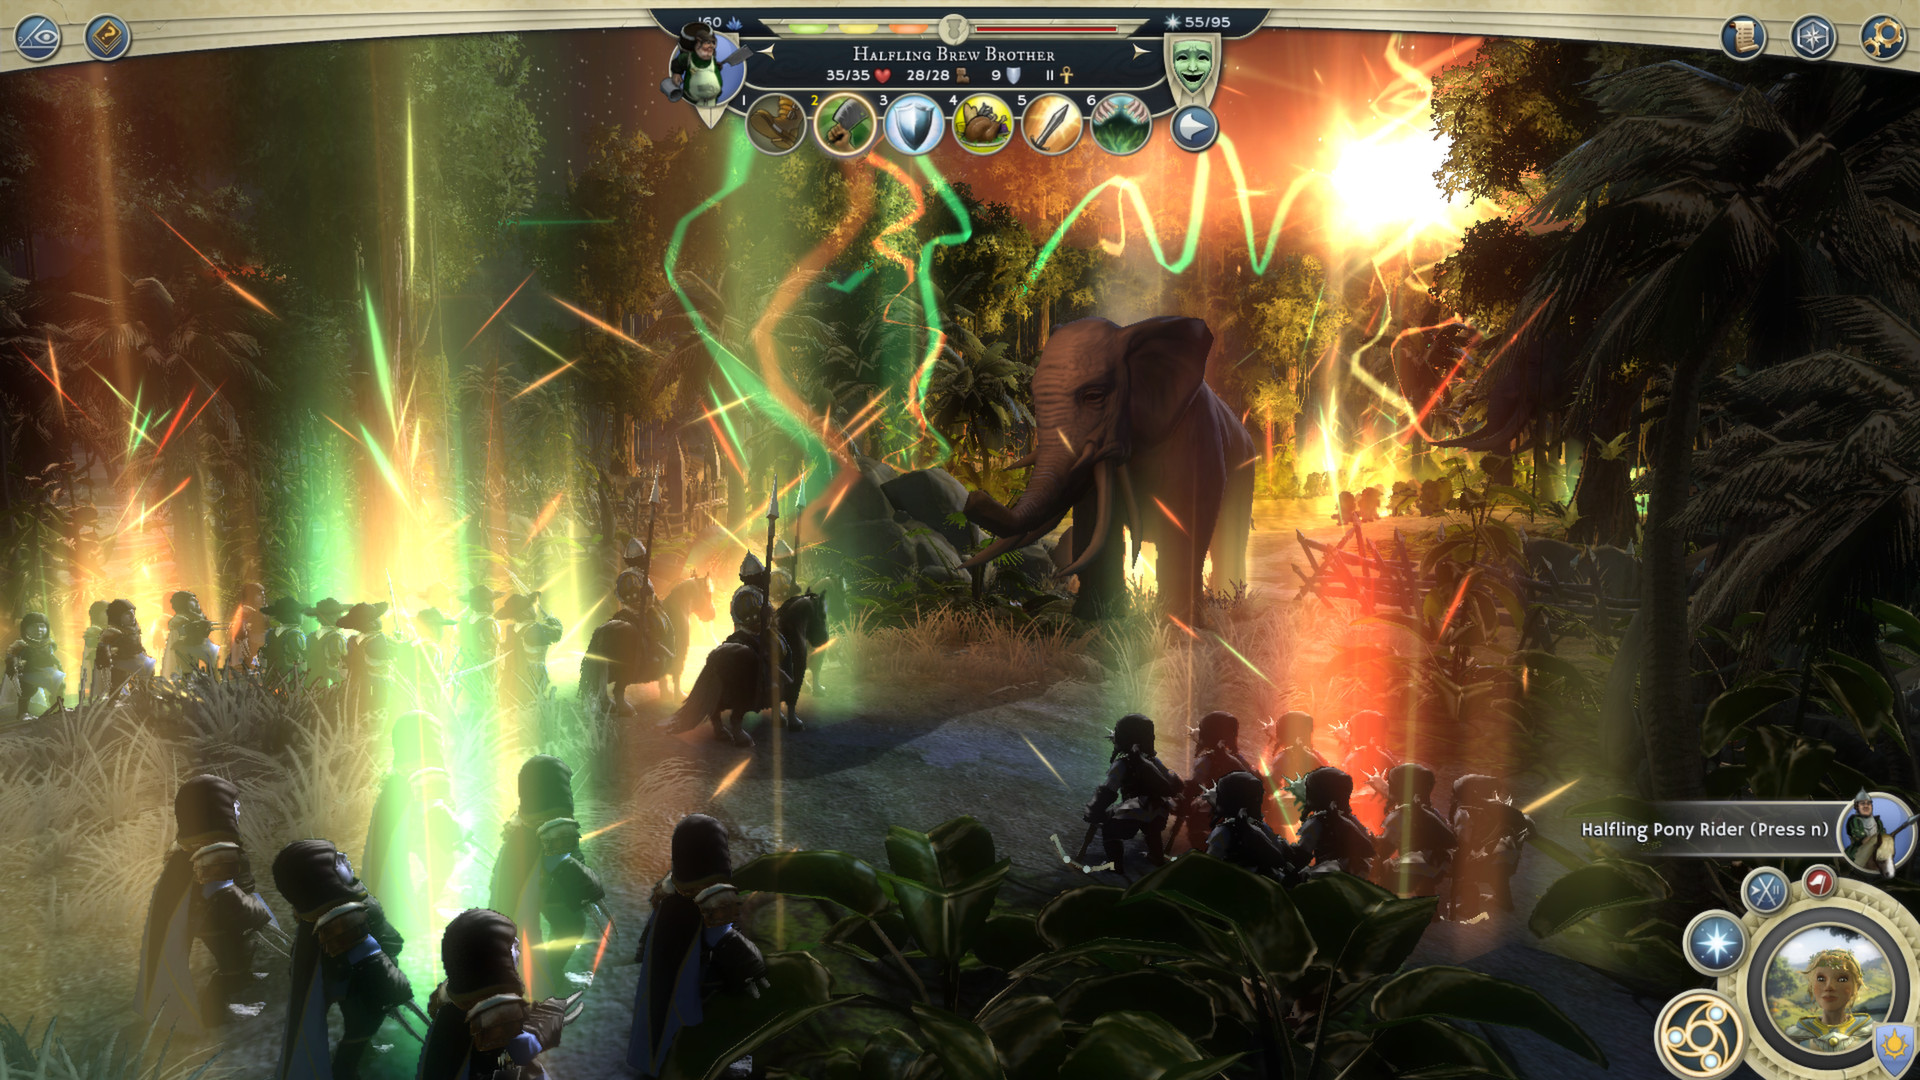 age-of-wonders-3-deluxe-pc-screenshot-04